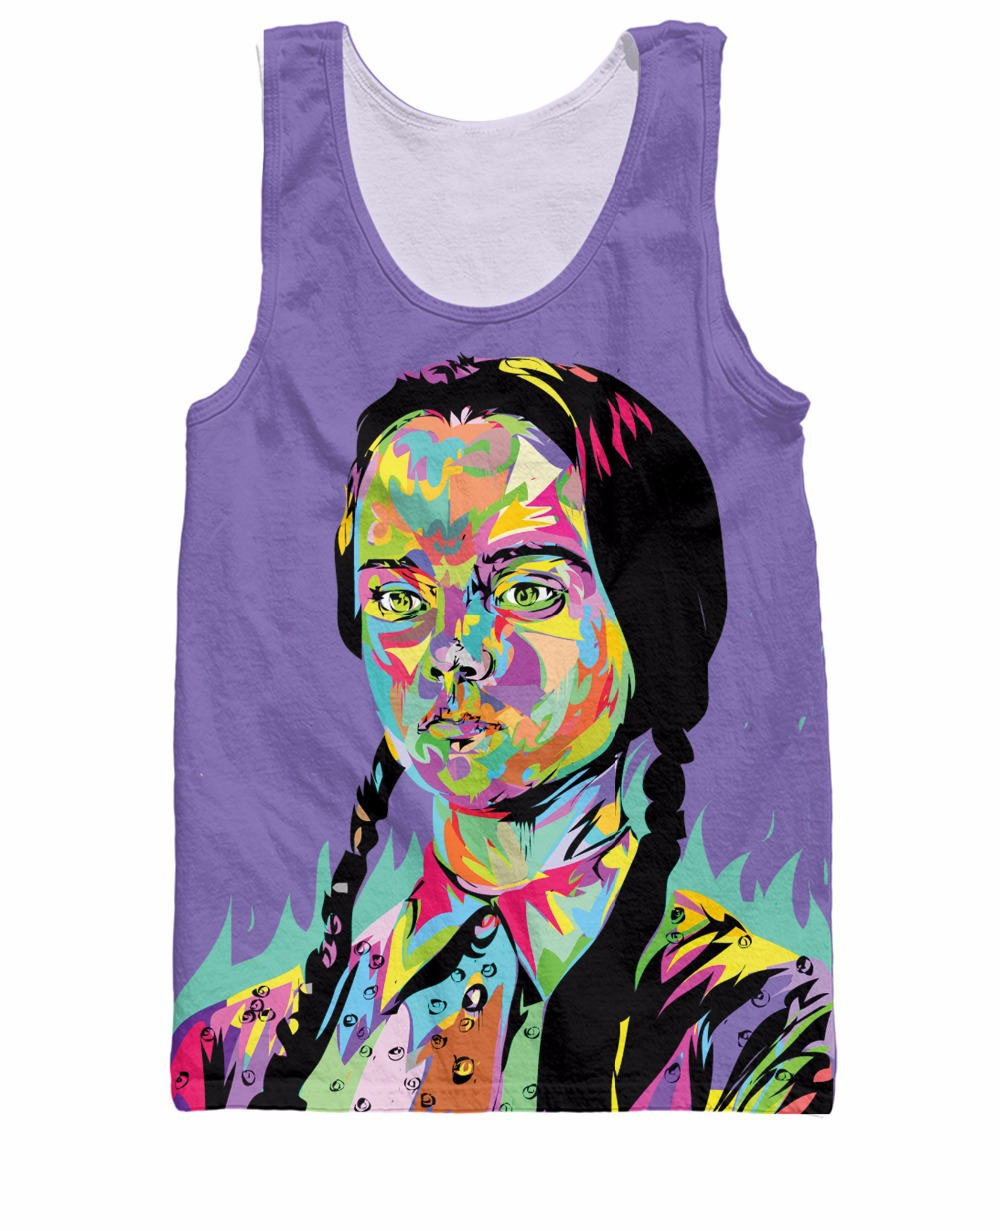 Death And Rock Sick Wednesday Addams Technodrome1 Tank Top Hip Hop Tops Vest Streetwear Summer Style Tee Jersey For Women Men